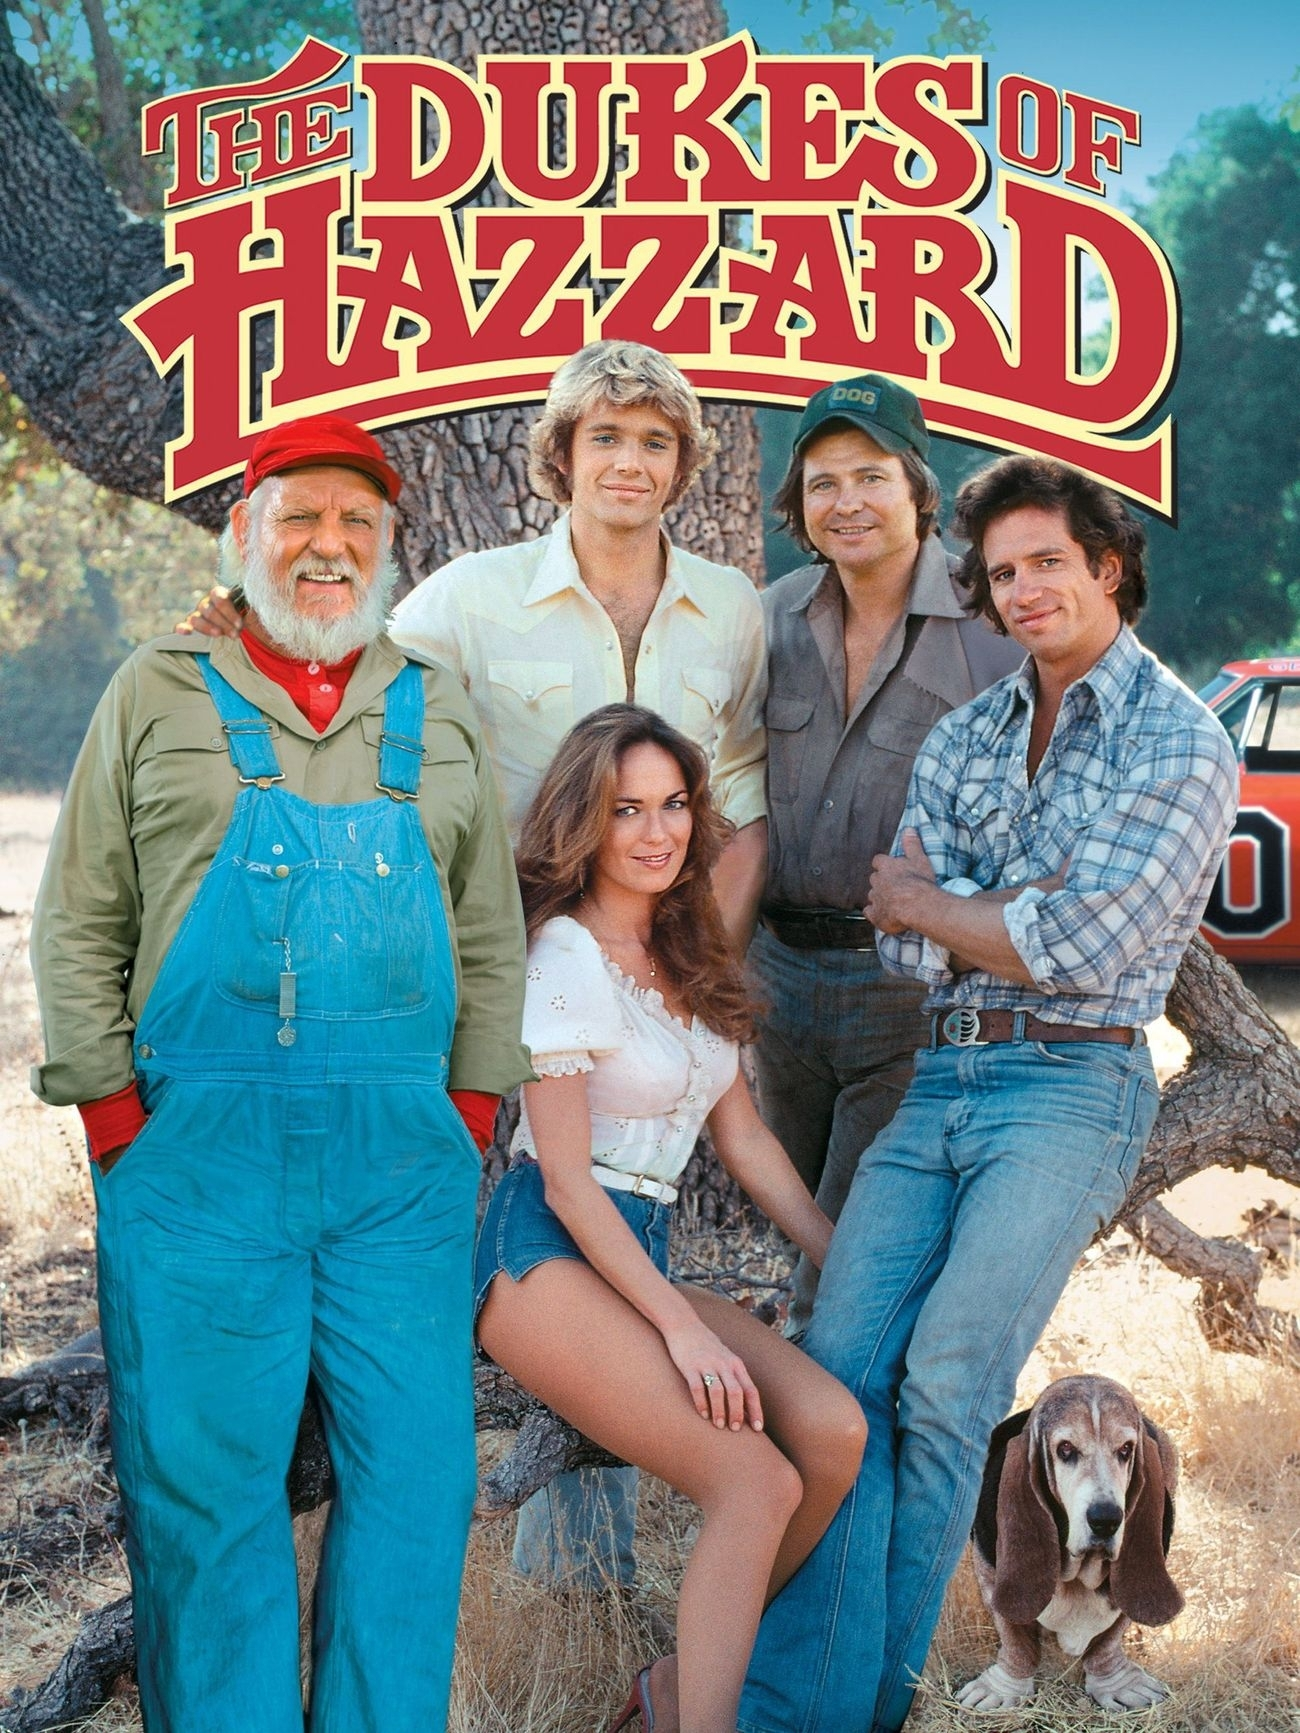 dukes of hazzard tv show: news, videos, full episodes and more | tv